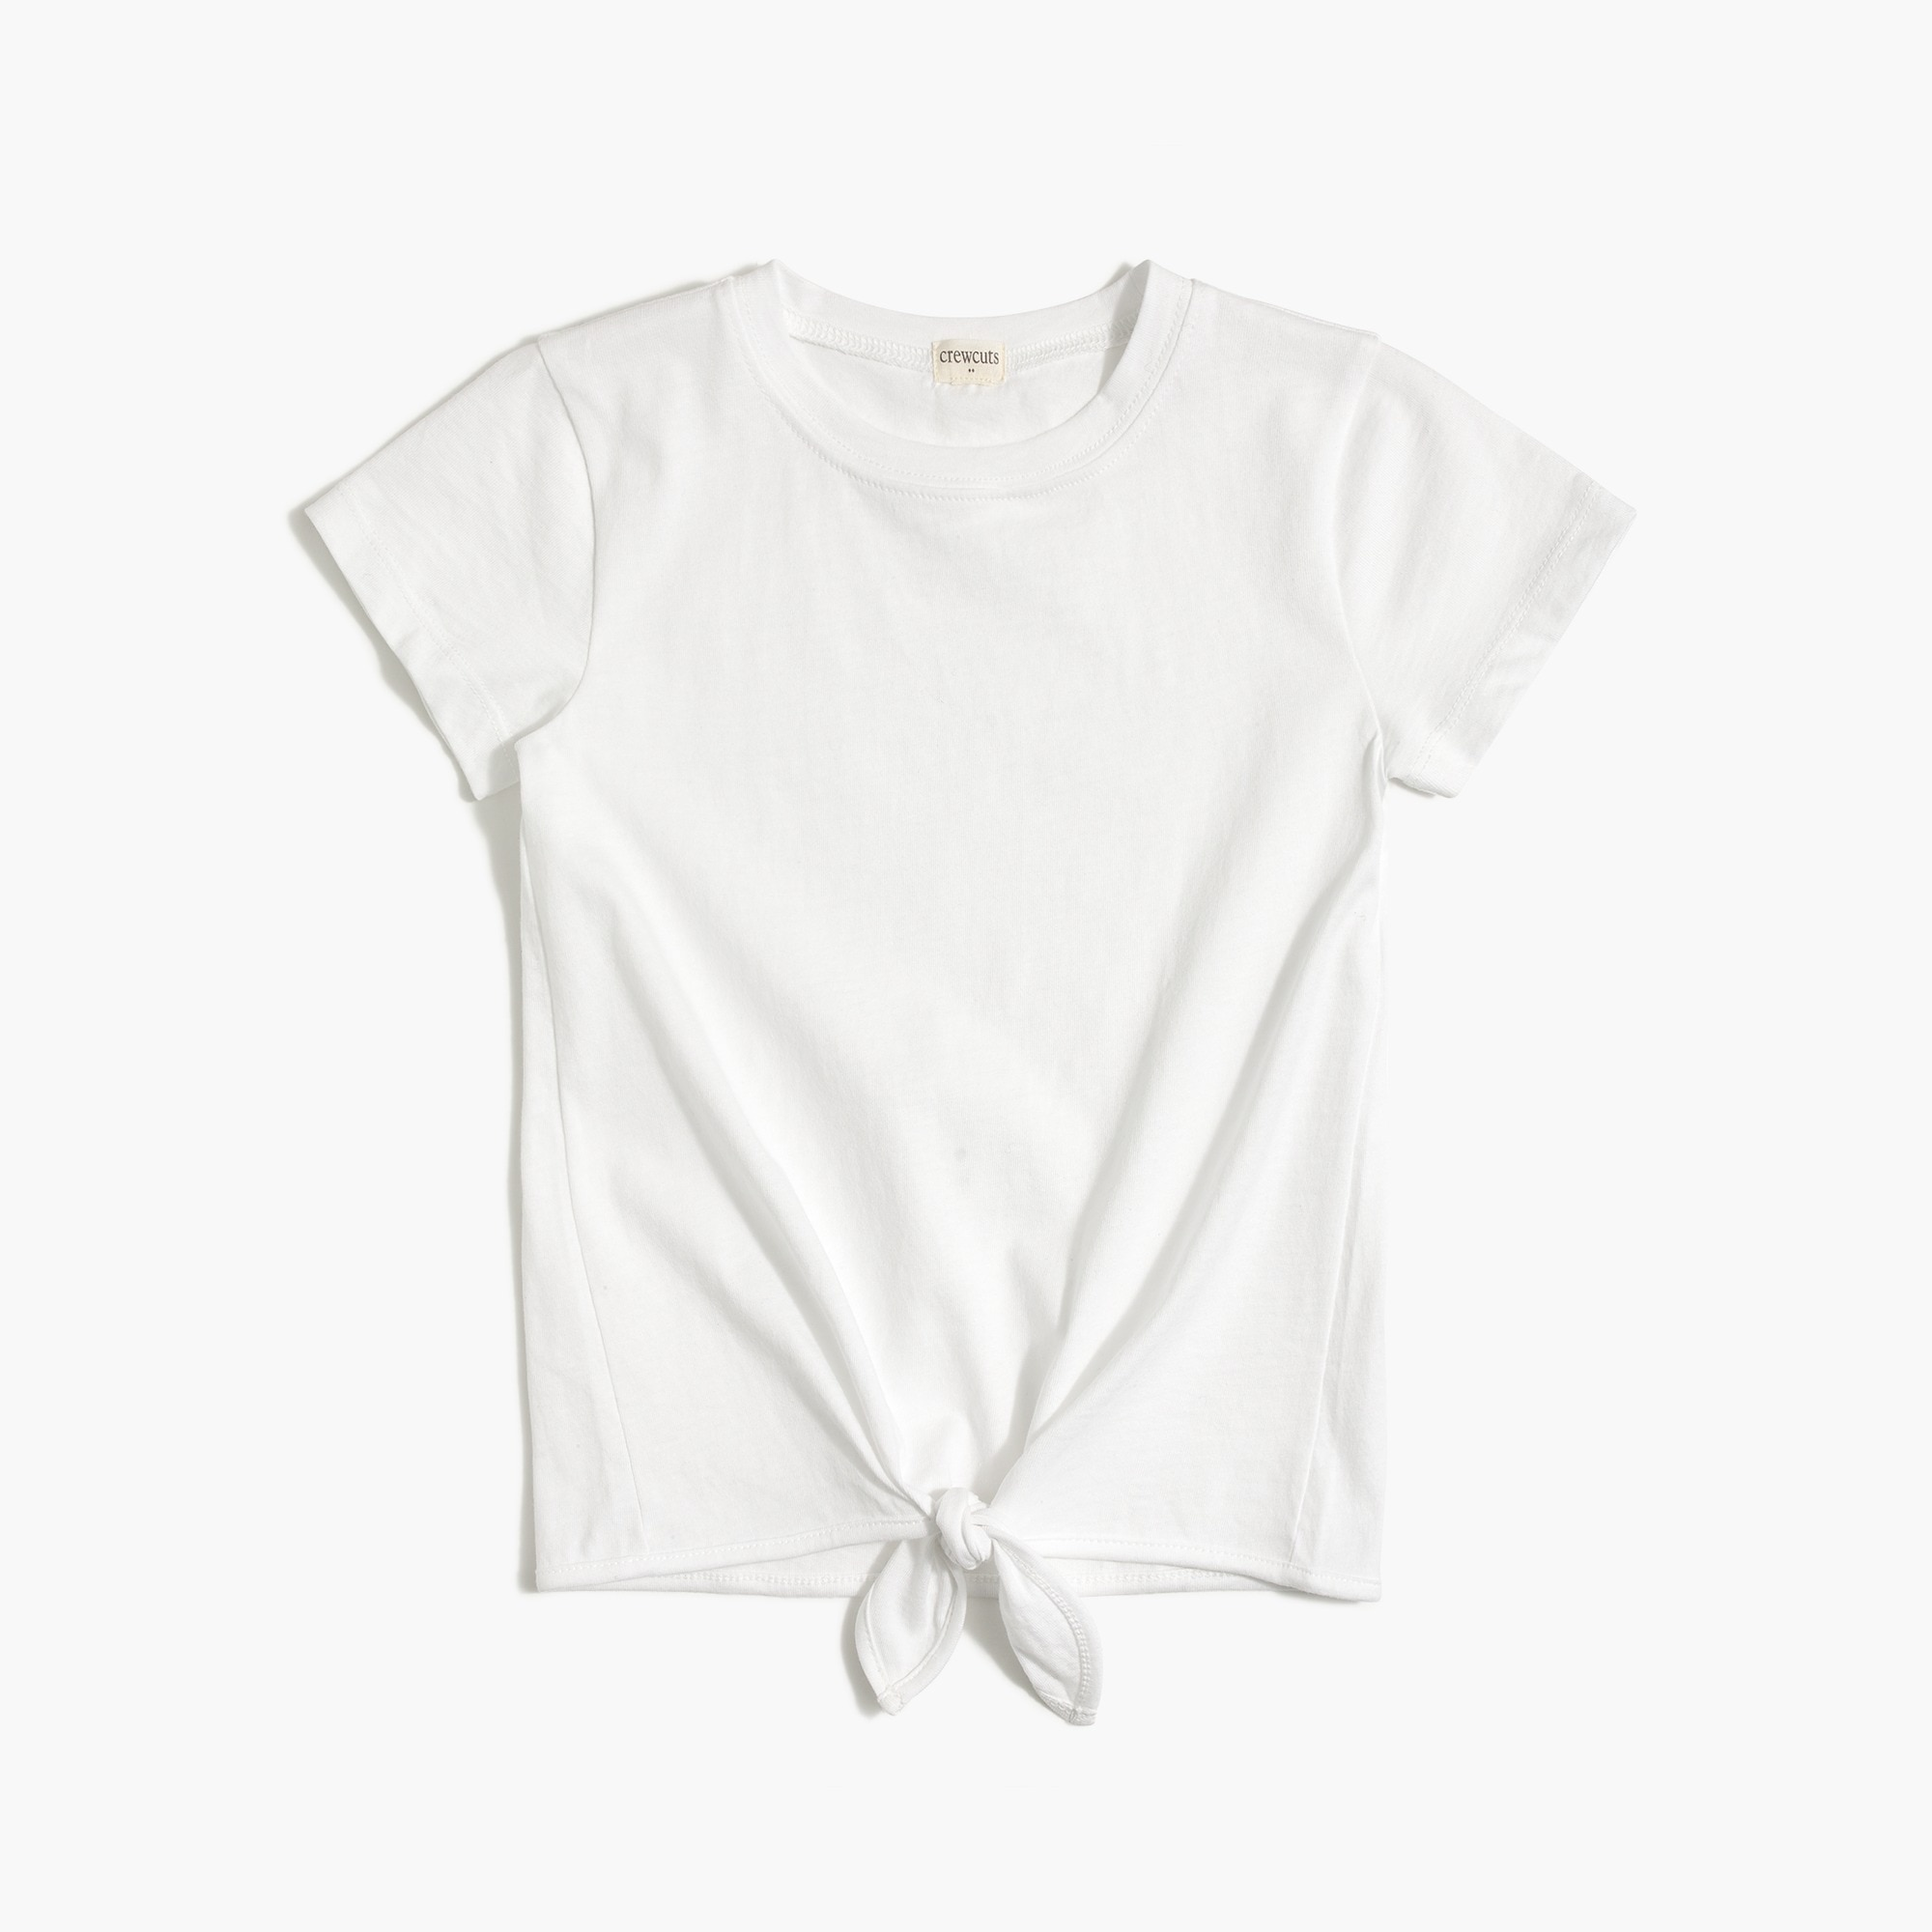 Girls' tie-front T-shirt factorygirls shirts, t-shirts & tops c